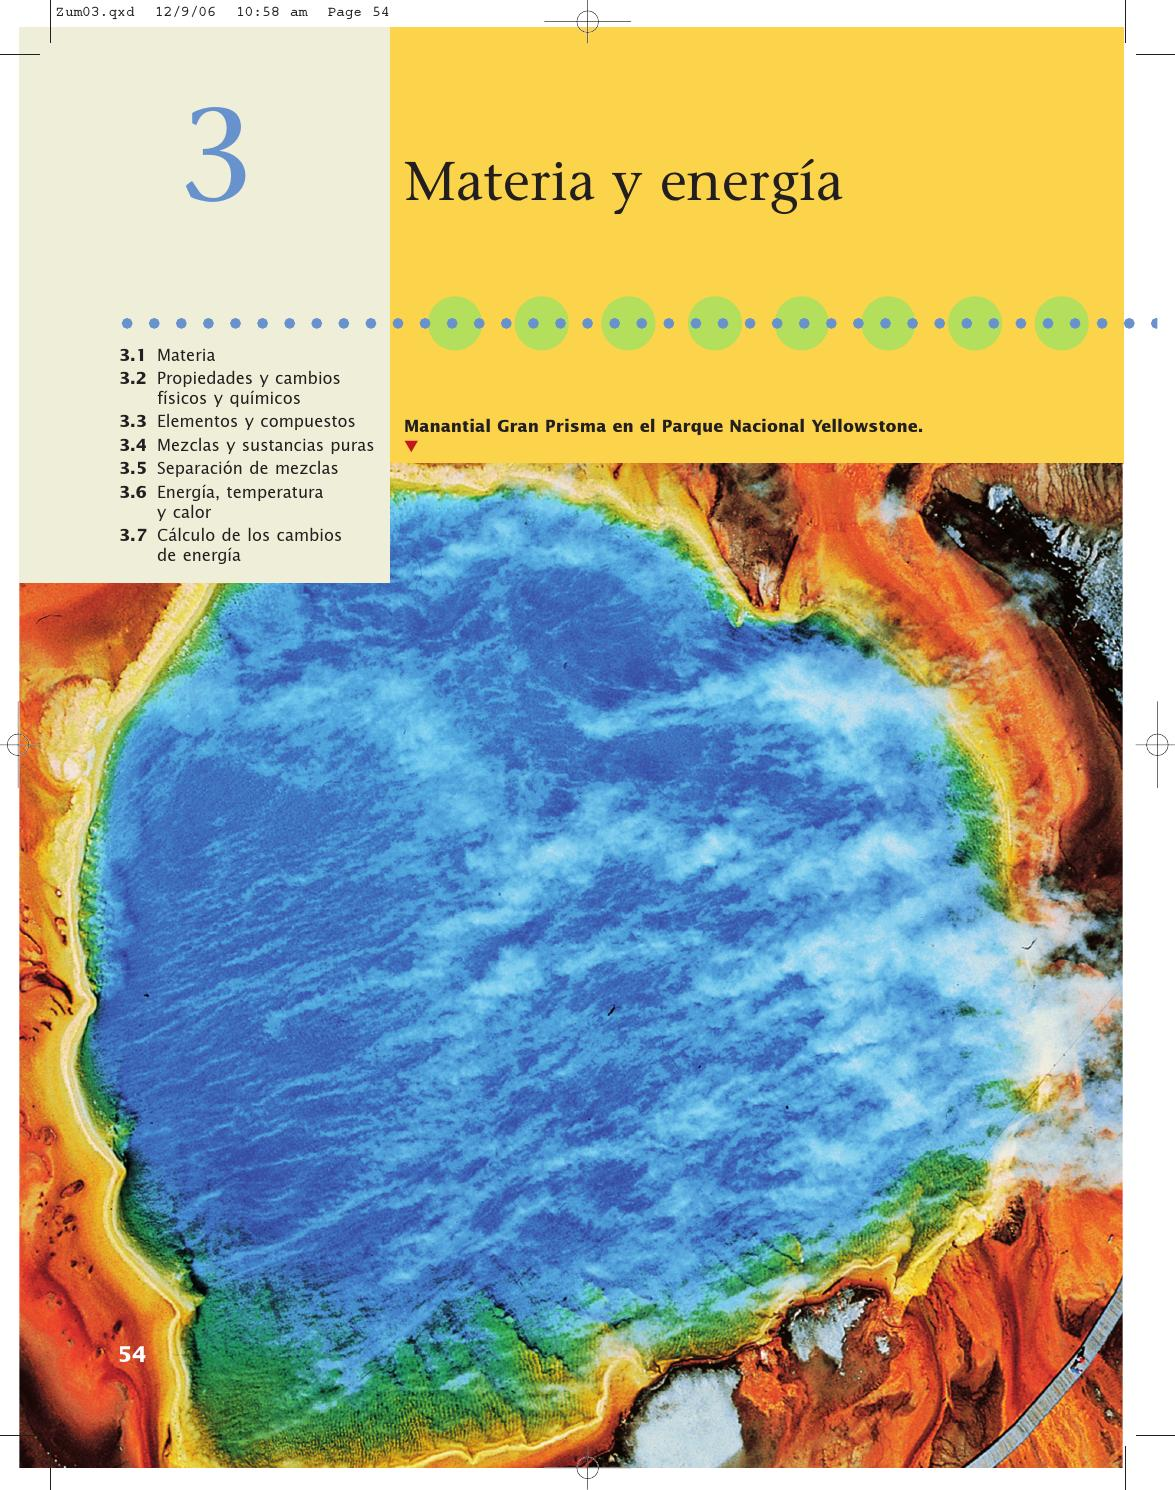 Materia y Energia by angel daddy - issuu